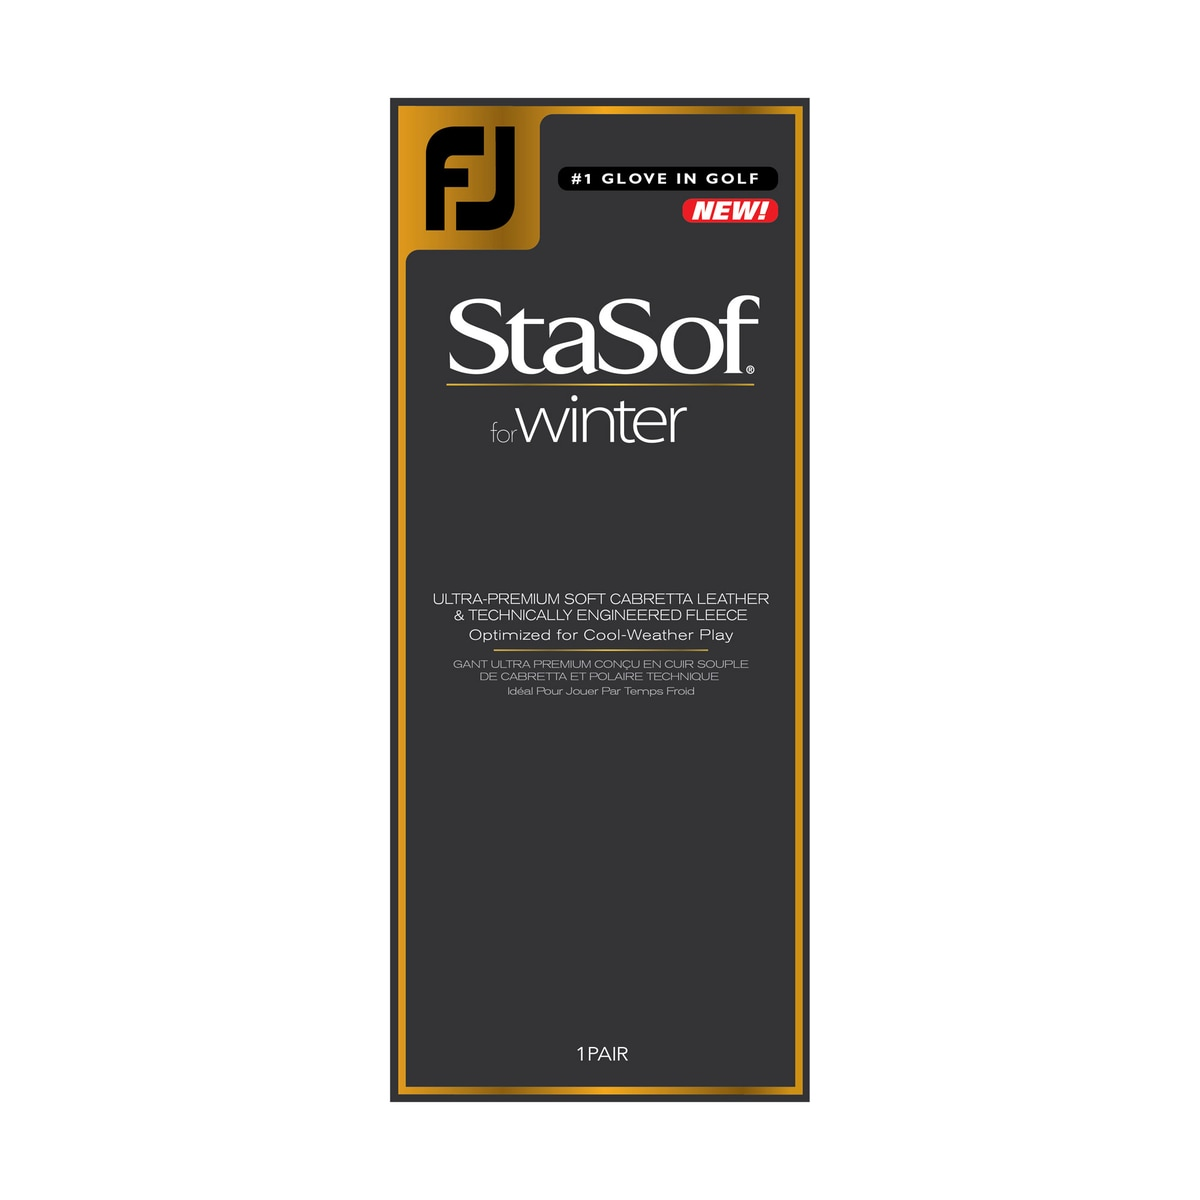 StaSof Winter Pair